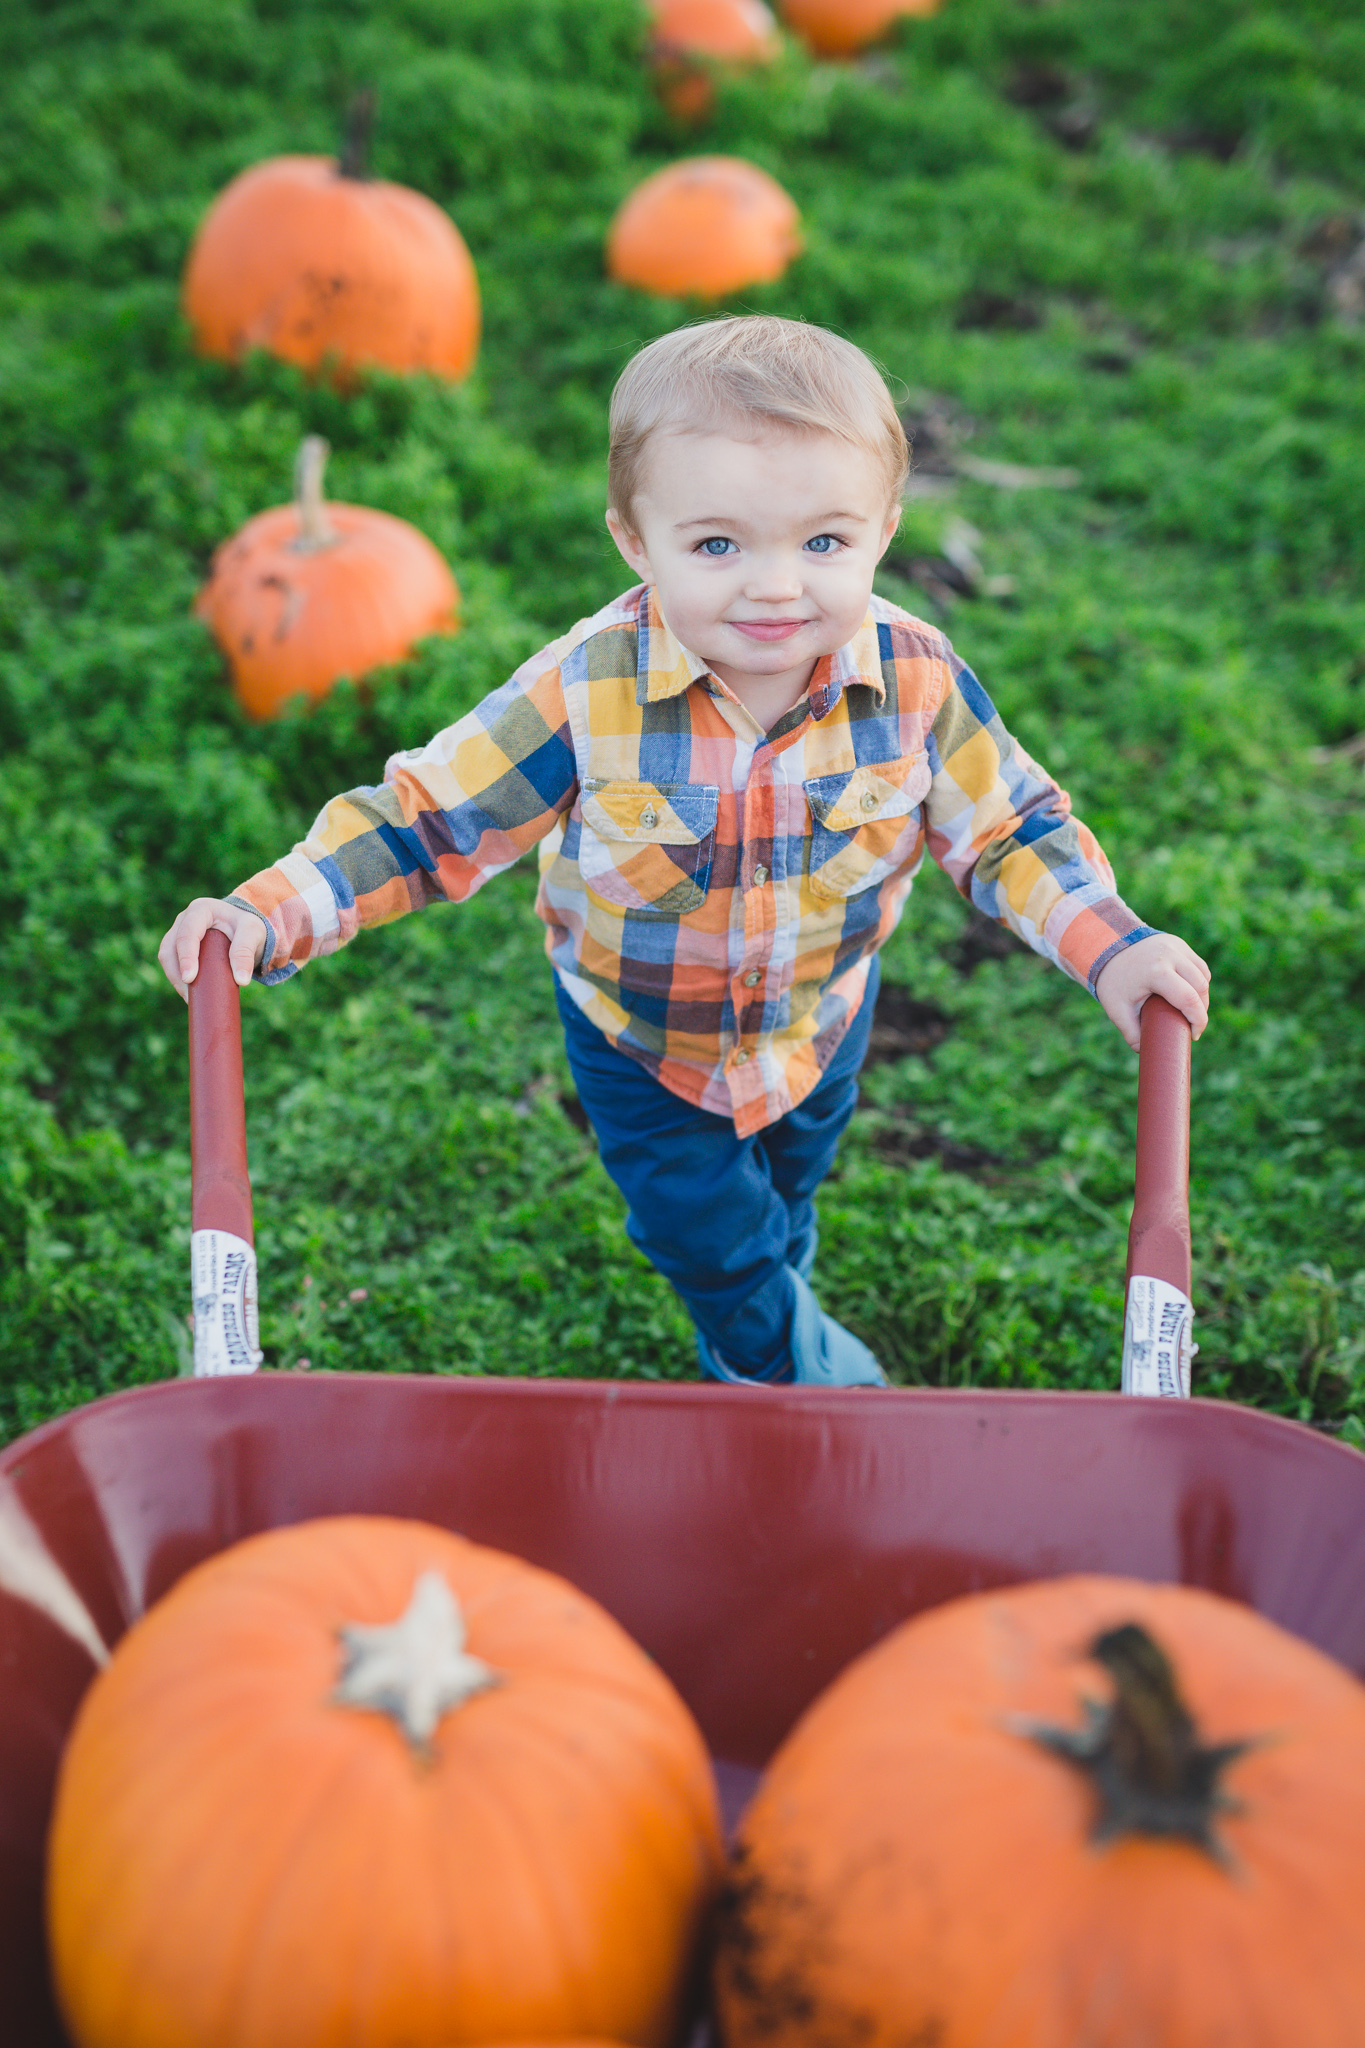 rondriso farms pumpkin patch, wink photography, vancouver family photographer, family photographer cloverdale, cloverdale, pumpkin patch photos, rondriso farms